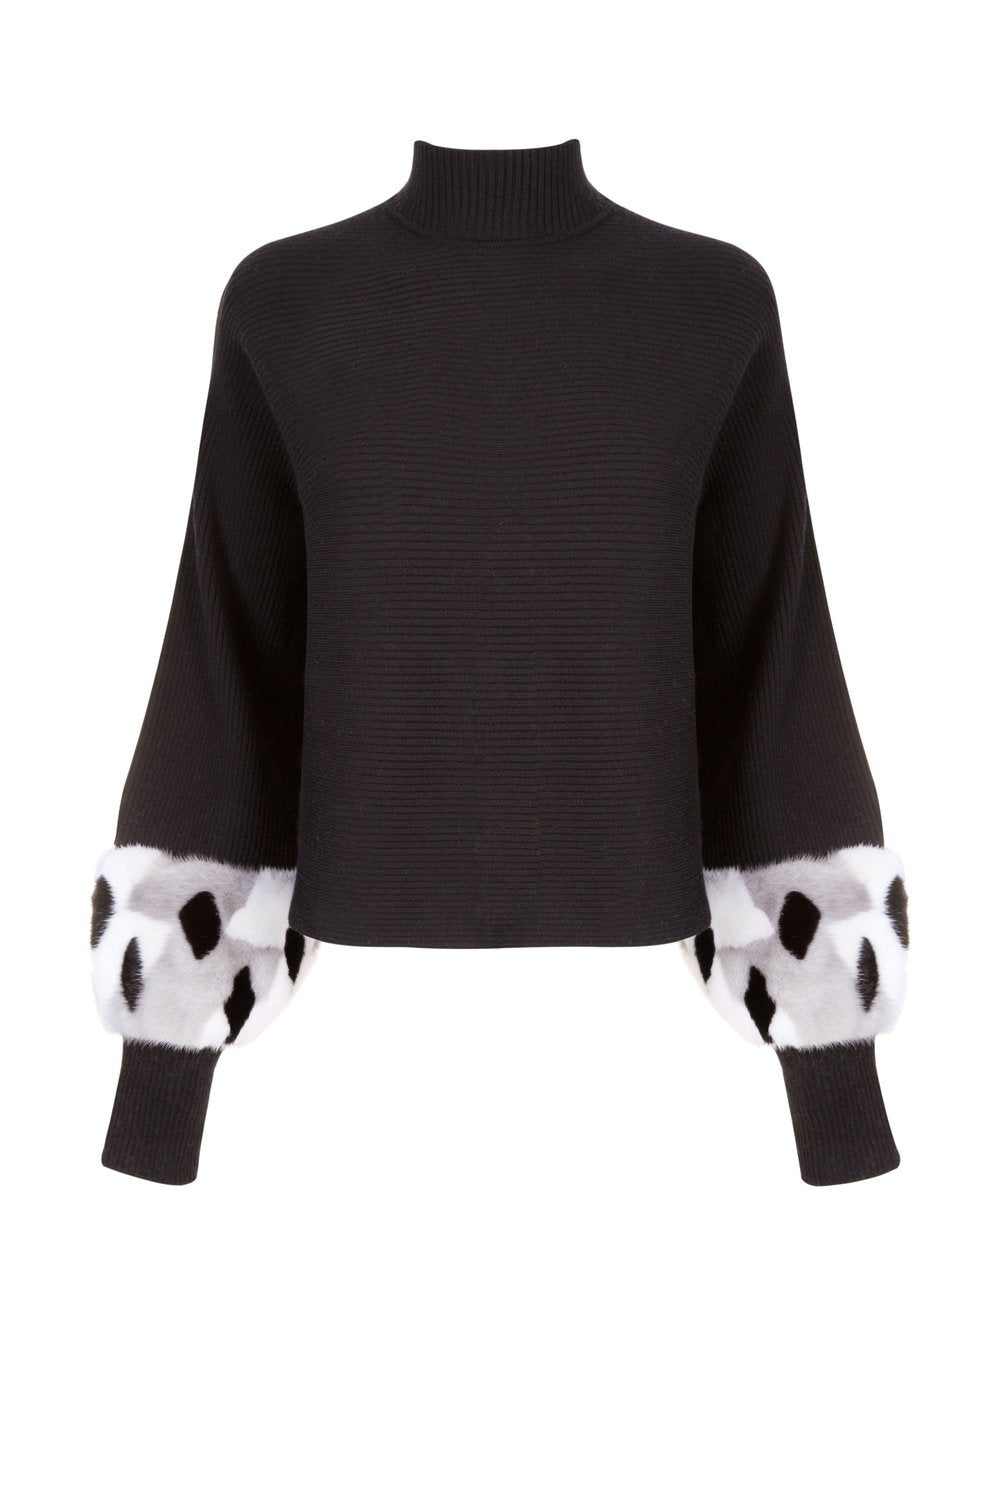 Black Dotted Fur Cuff Sweater